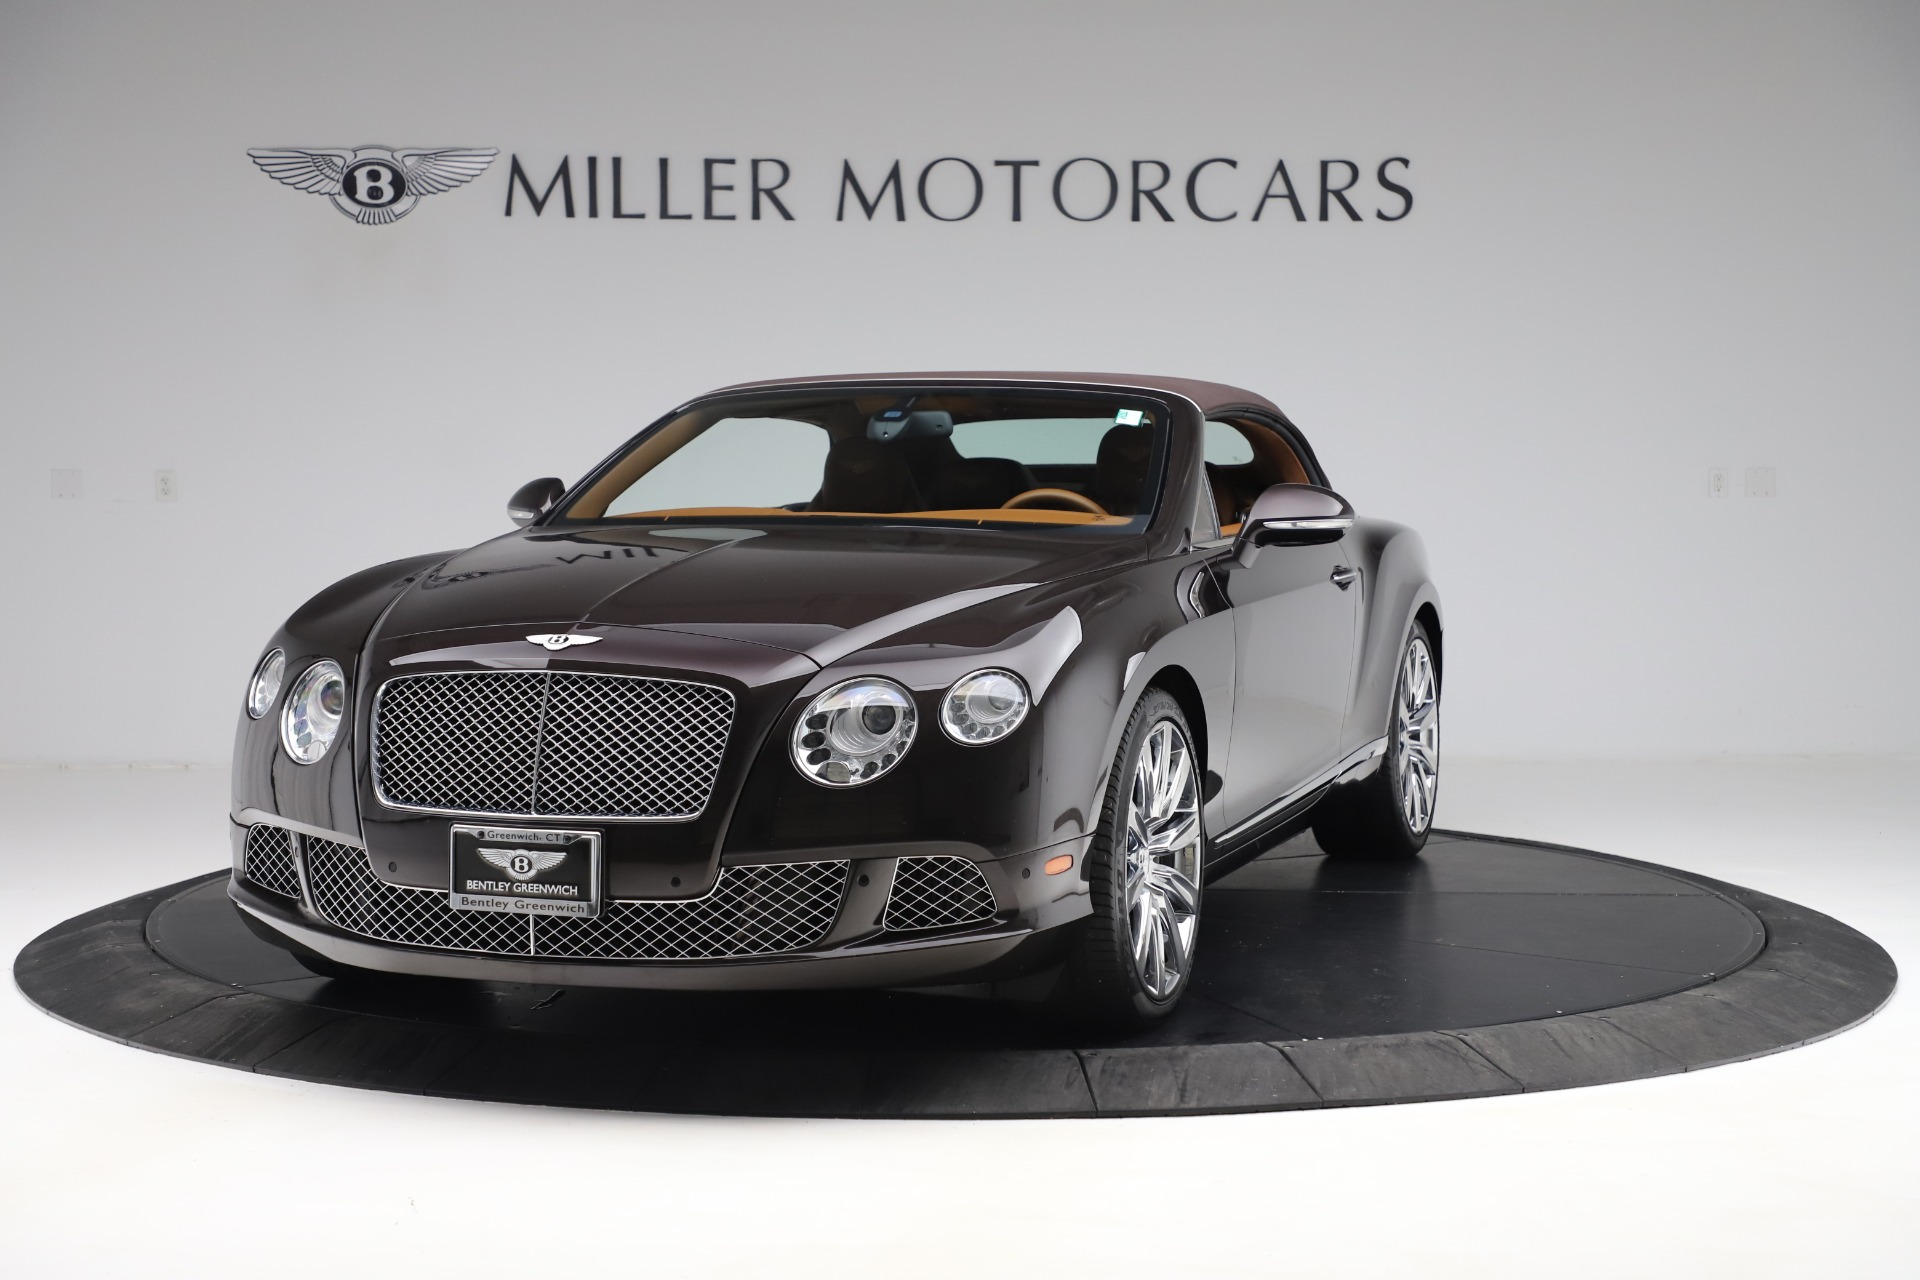 Used 2013 Bentley Continental GT W12 For Sale In Westport, CT 3505_p13